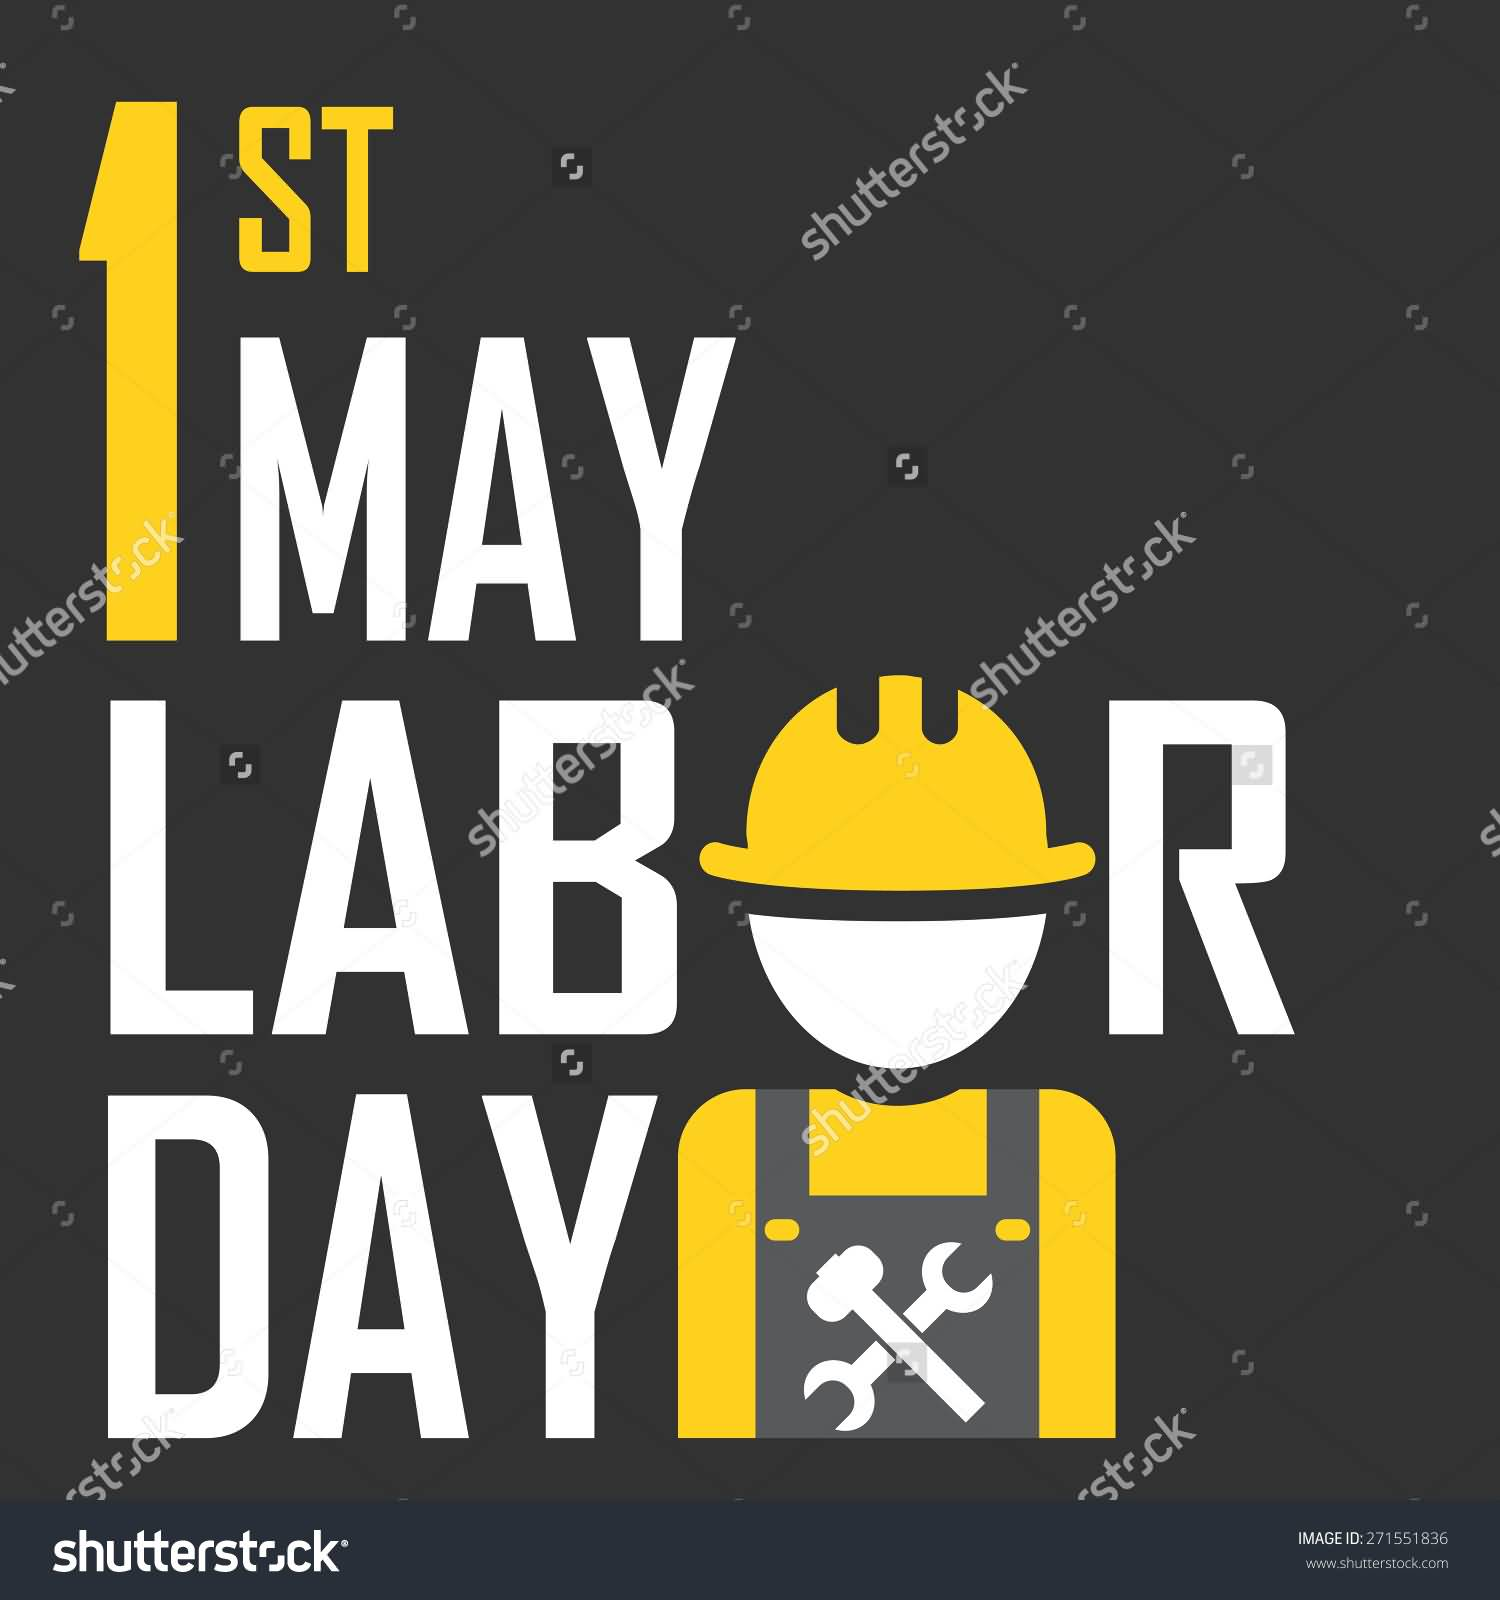 1st May Labor Day Illustration